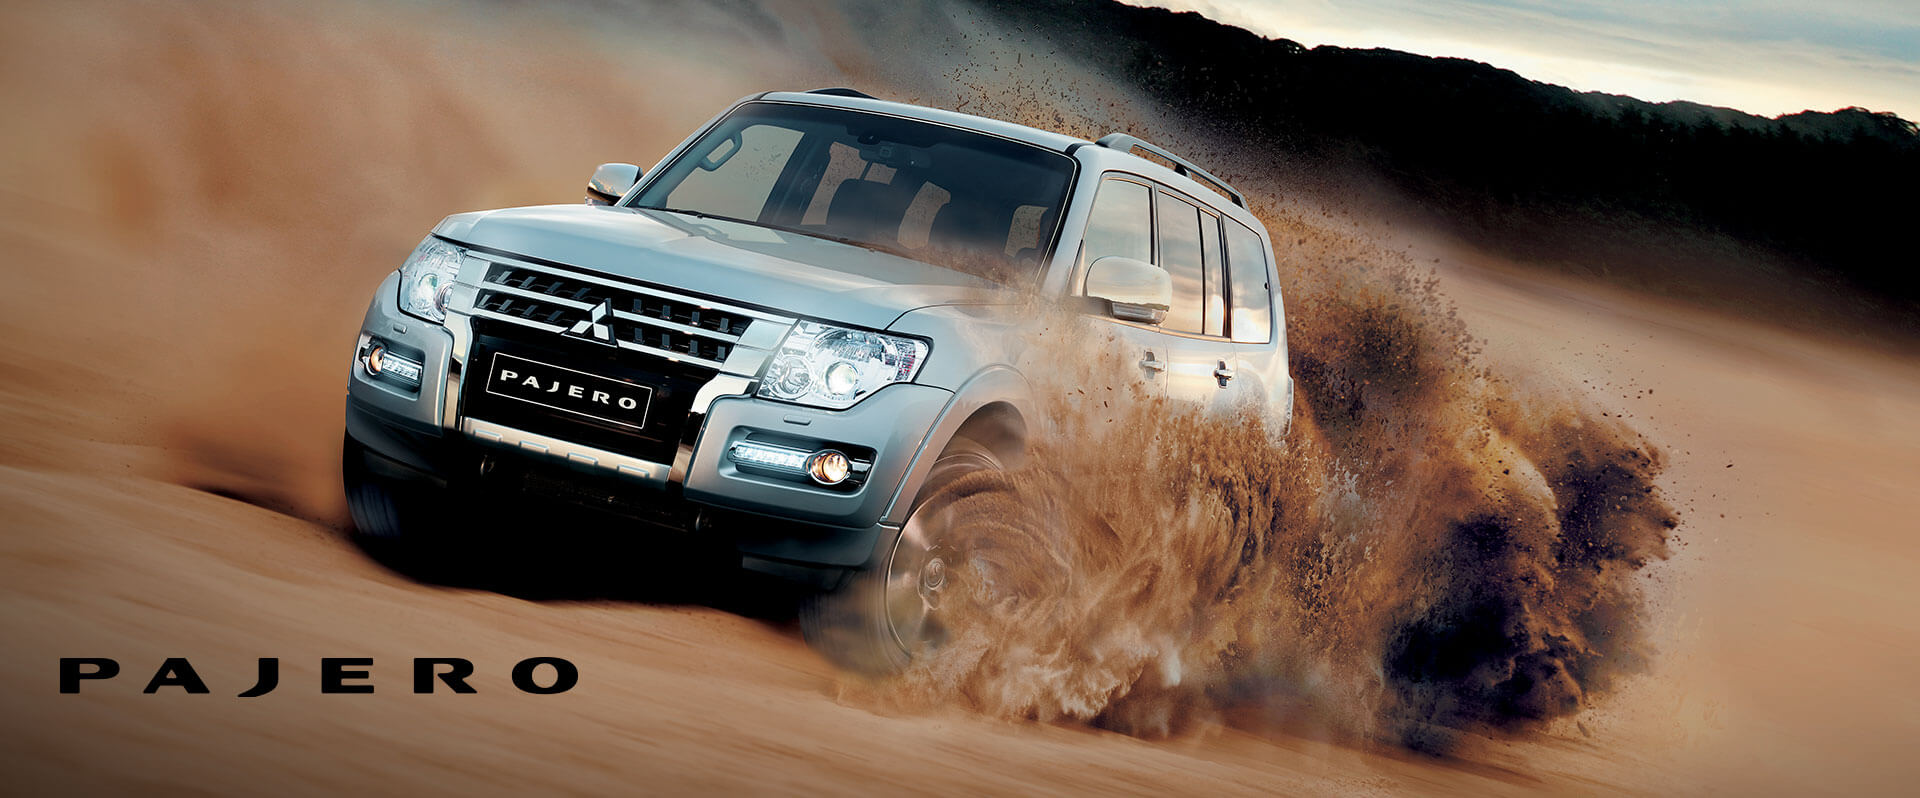 pajero-true-legend